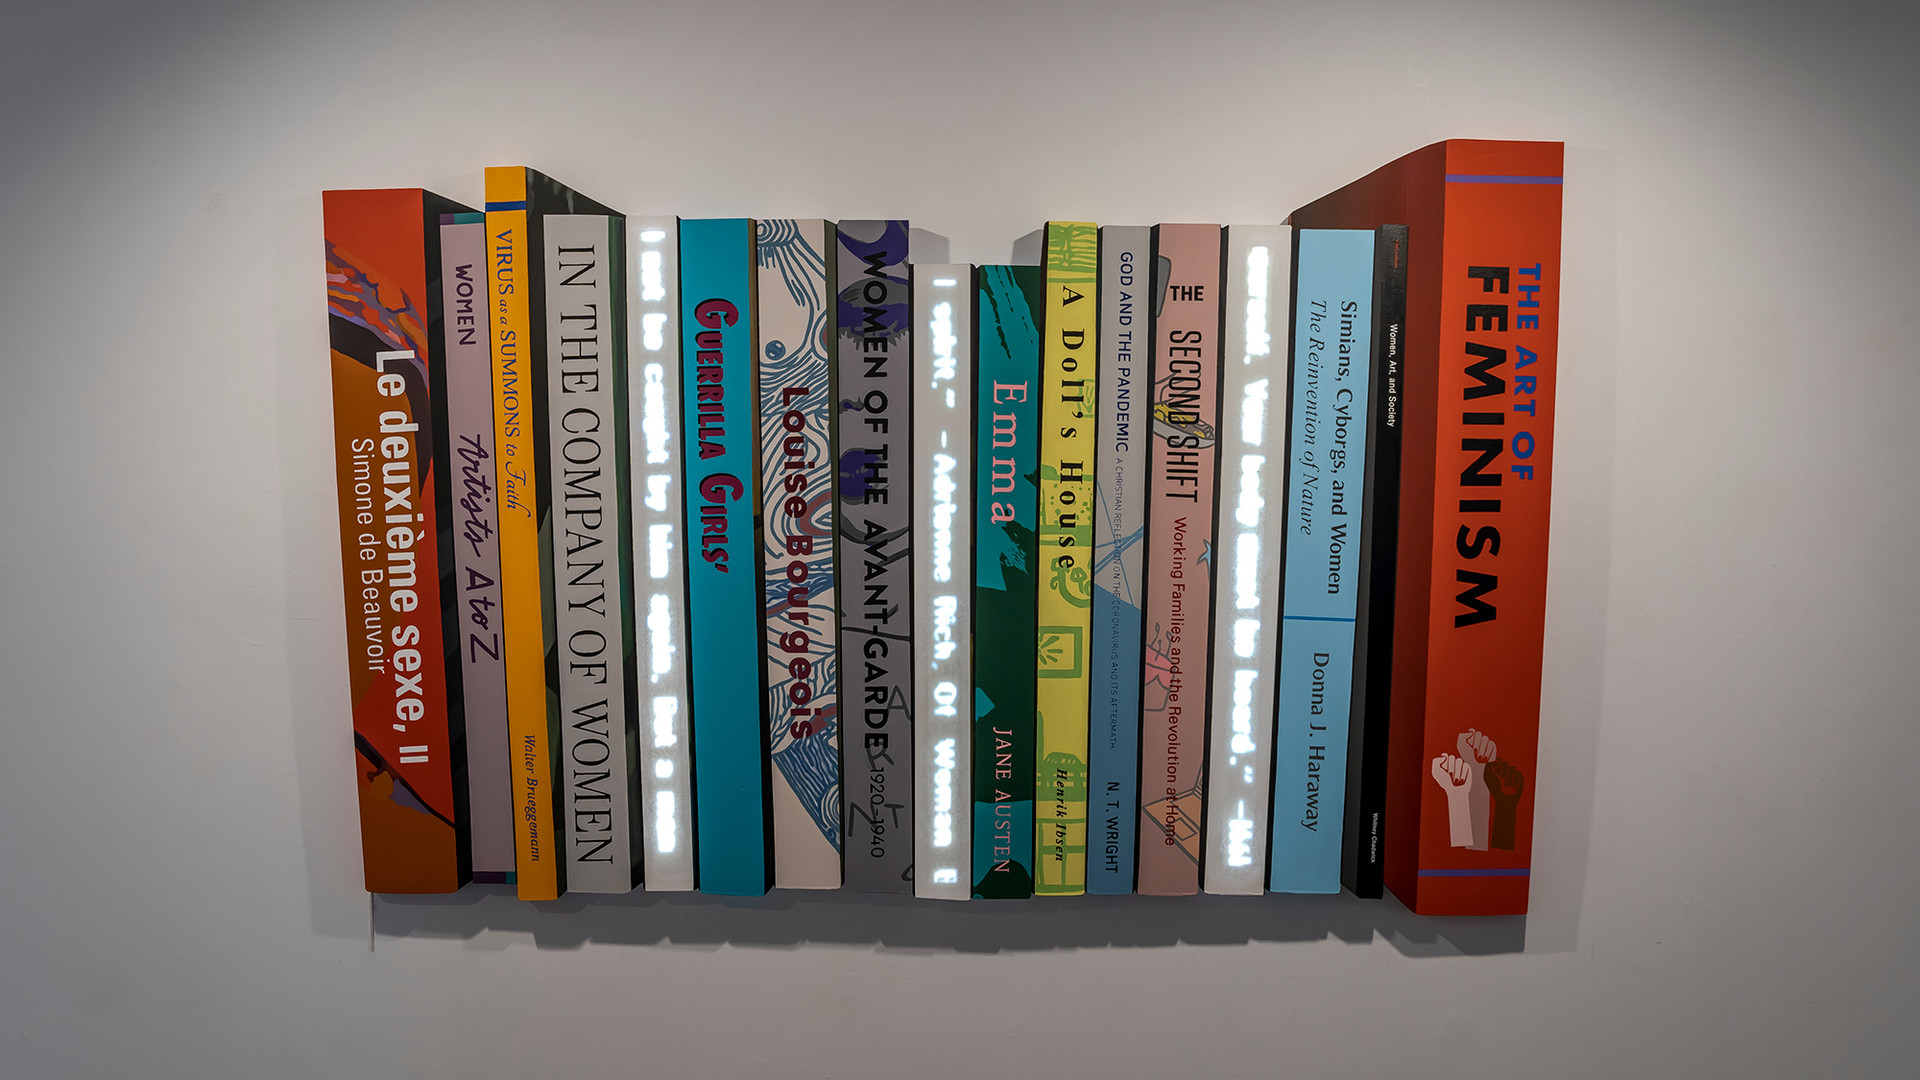 Pile of Books_The Art of Feminism, 2020, Acrylic on shaped canvas, 174.1 x 108.7 x 3.5 cm